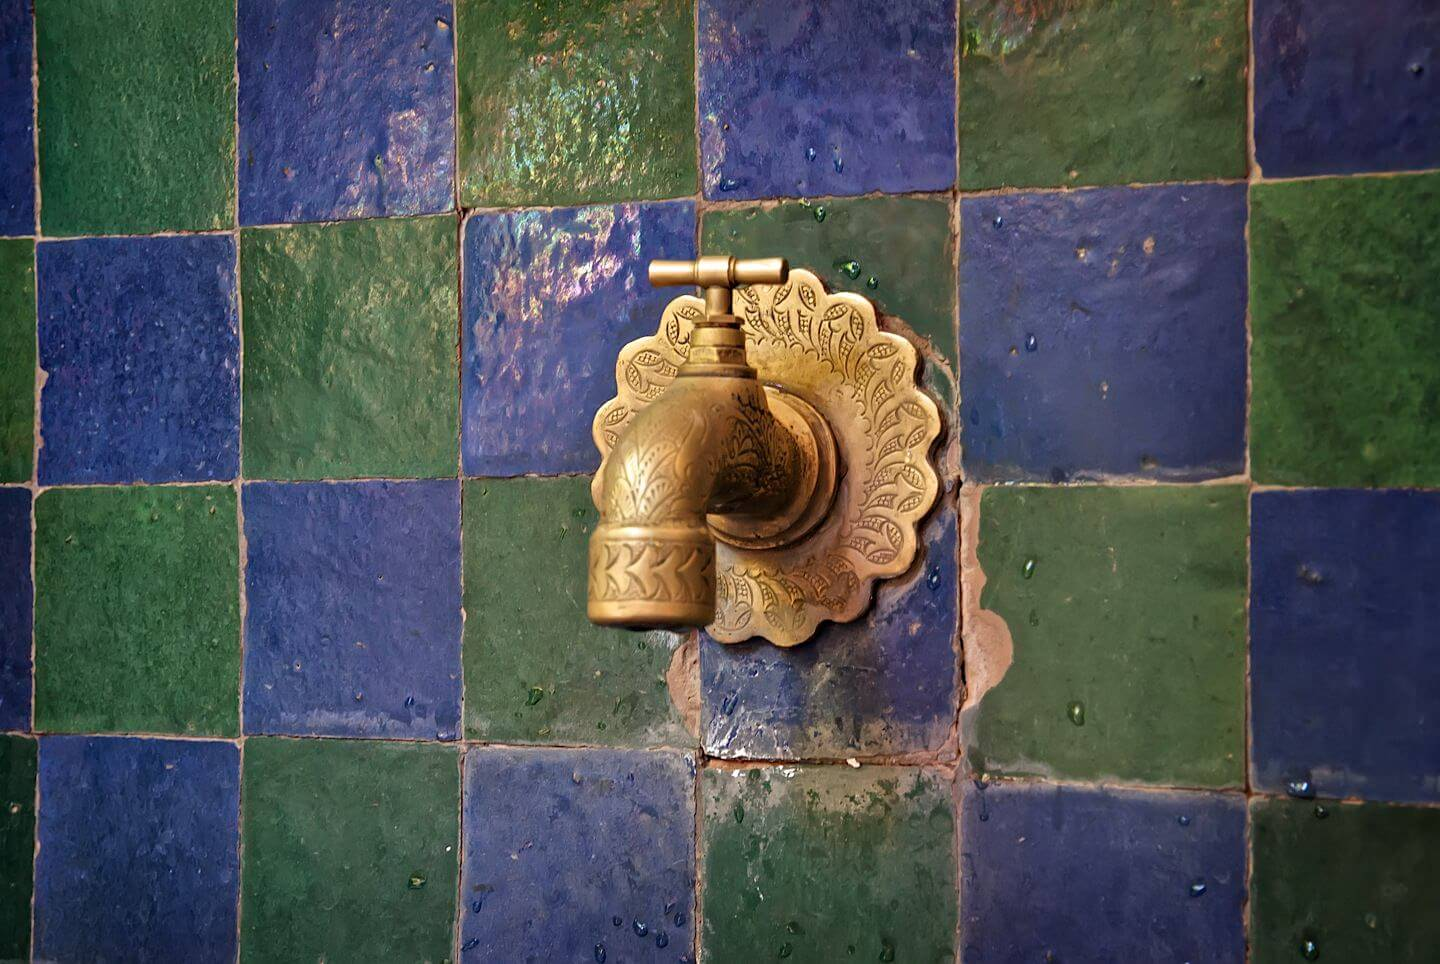 Detail of a water tap with blue/green tiles in Jardin Majorelle - Marrakech